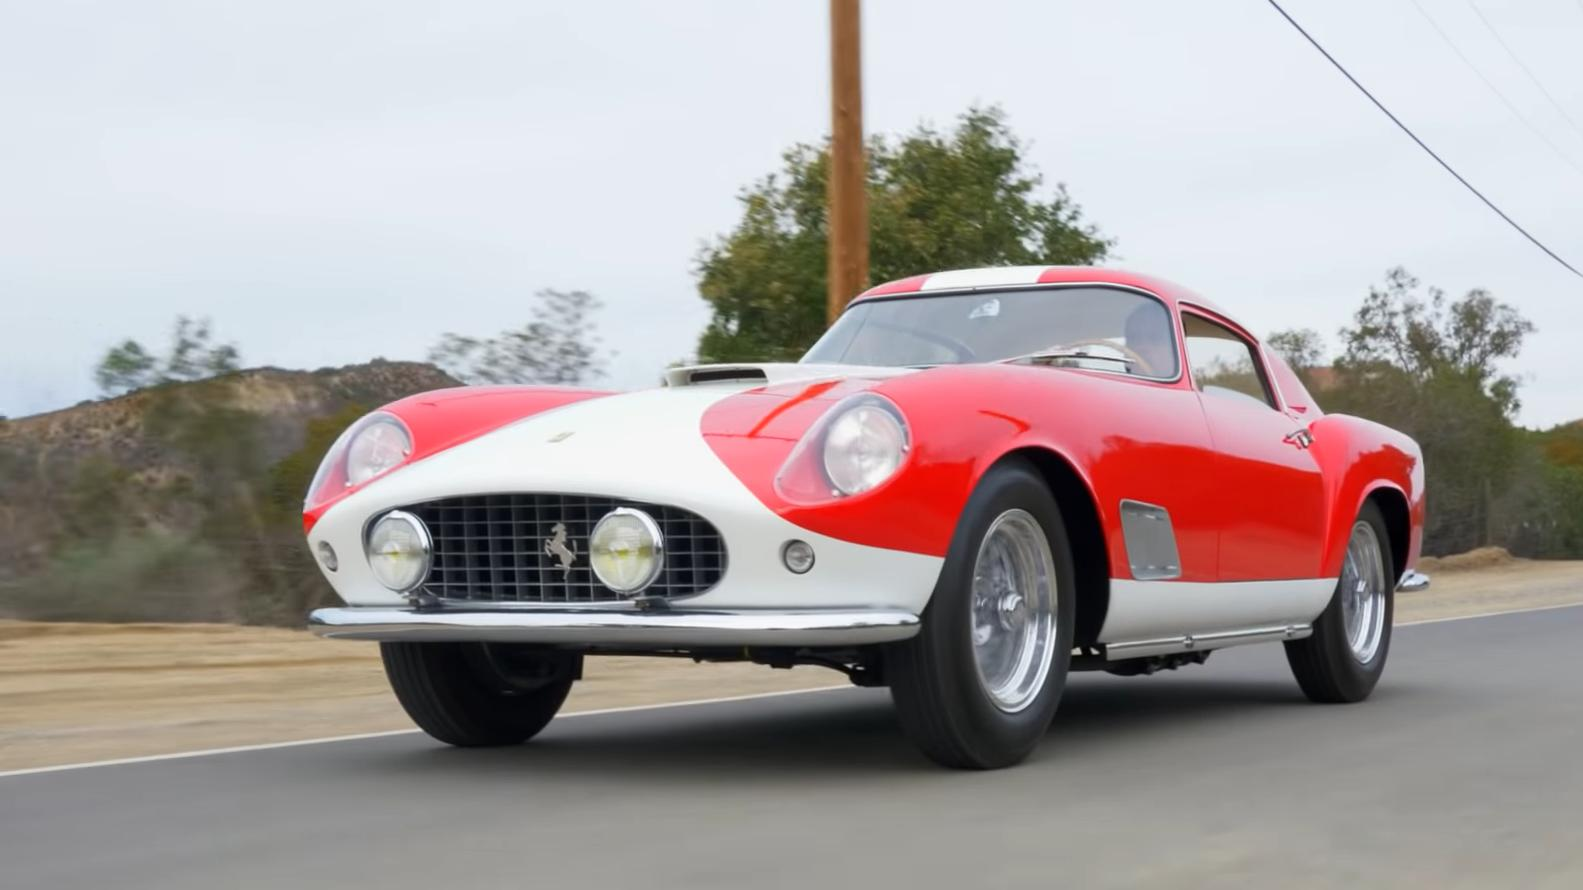 Rare 1958 Ferrari 250 GT TdF Berlinetta sells for $5,890,000